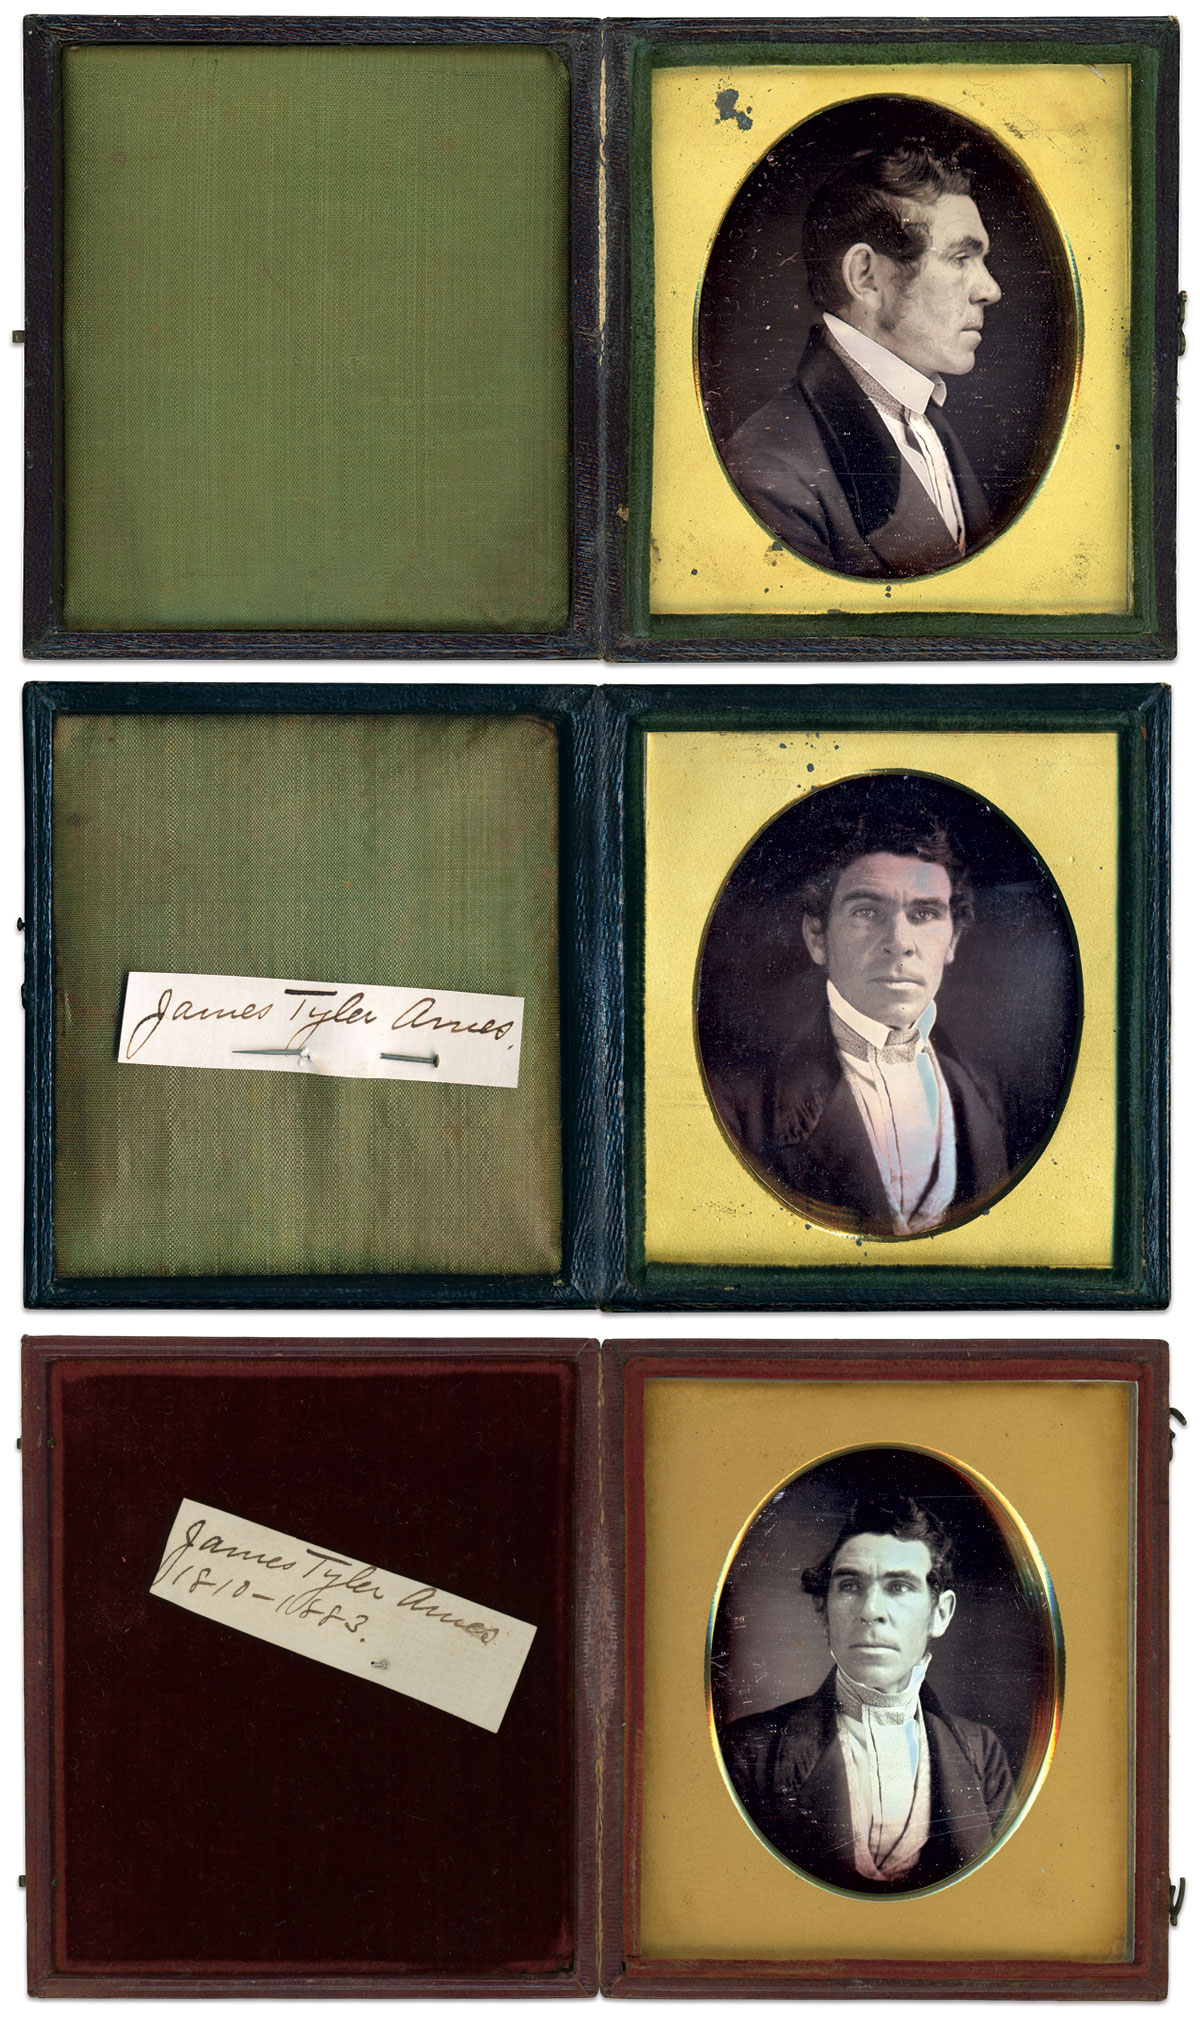 These daguerreotypes of Ames are believed to be made in 1845 after his association with the Boston Associates, who invested in his growing business.